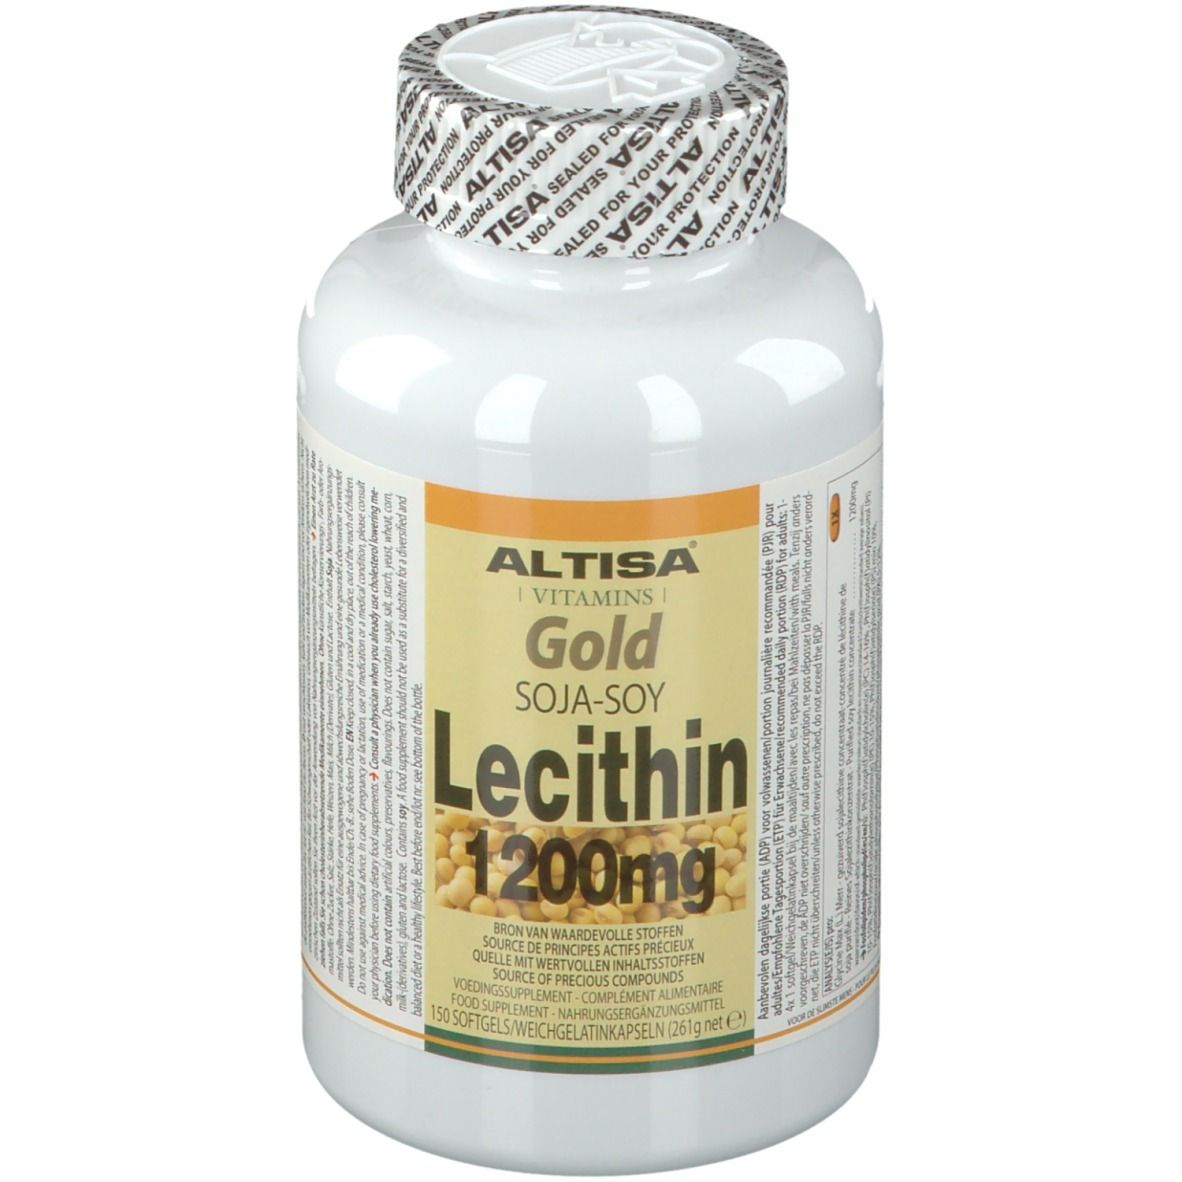 Image of ALTISA® Lecithin Gold Sojalecithin 1200 mg